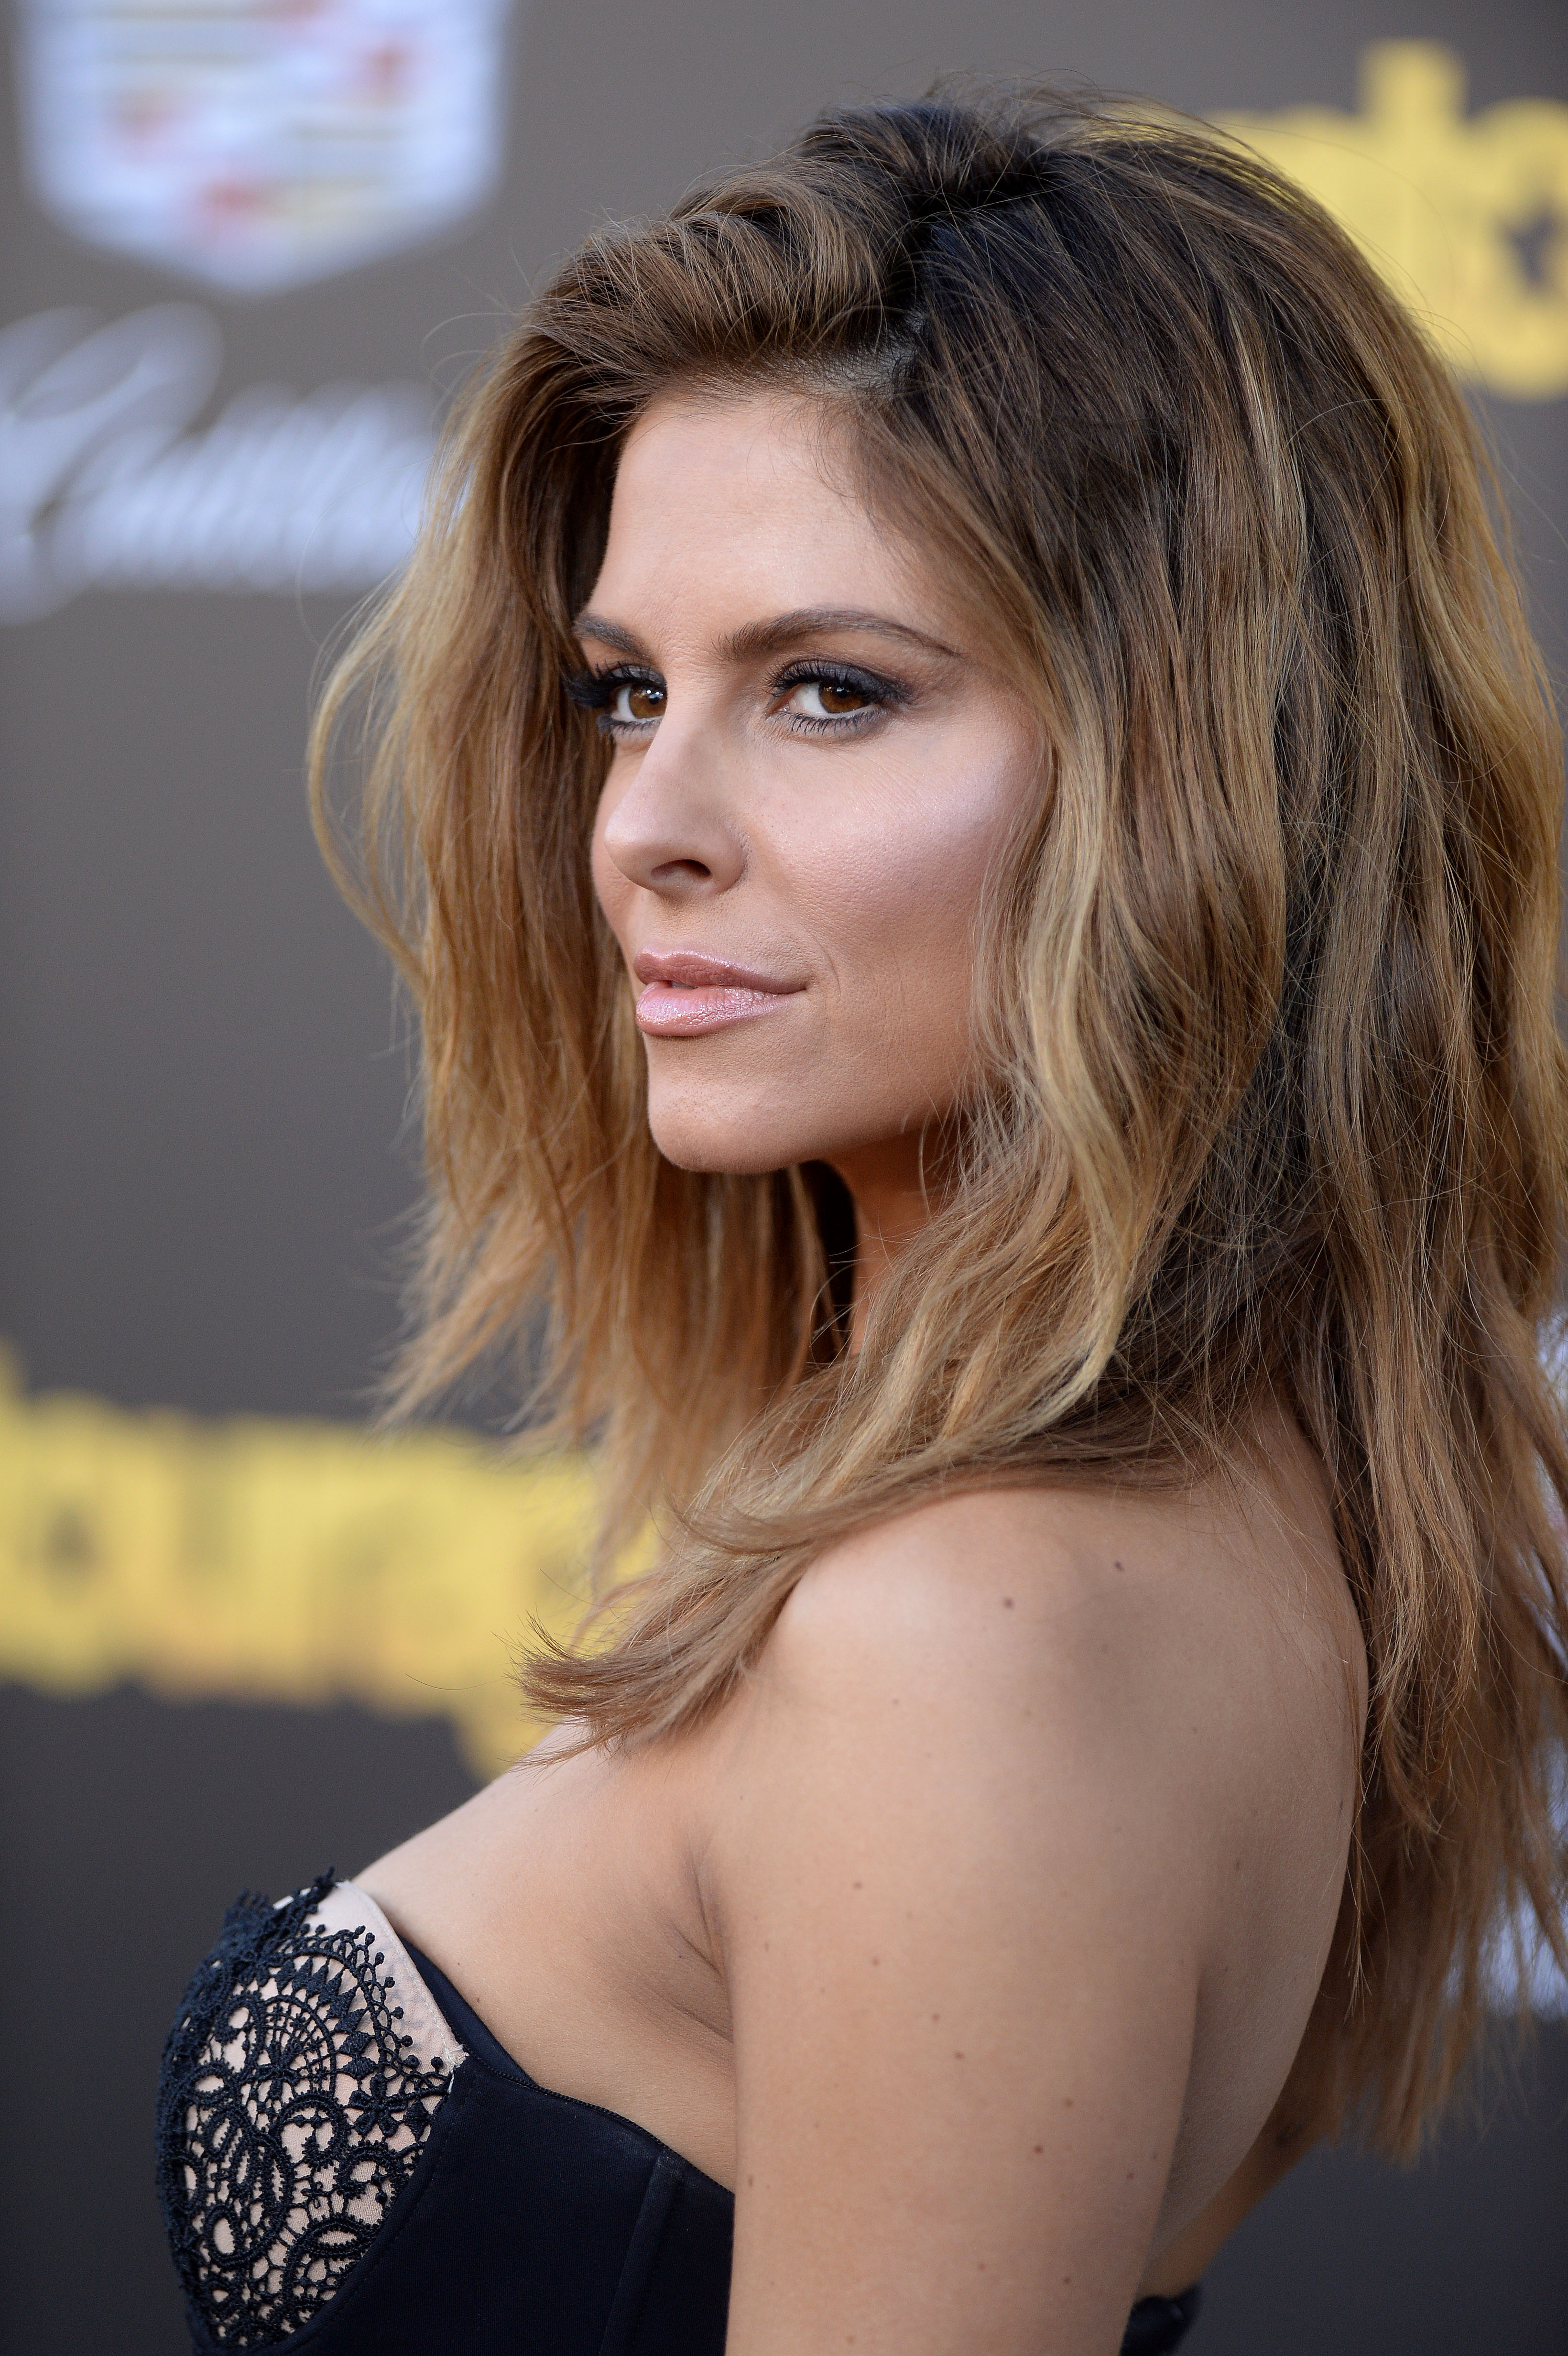 maria menounos dancing with the starsmaria menounos vk, maria menounos 2016, maria menounos forum, maria menounos wiki, maria menounos howard stern show, maria menounos wrestling, maria menounos dancing with the stars, maria menounos jeans, maria menounos vs, maria menounos red dress, maria menounos smile, maria menounos superiorpics, maria menounos instagram, maria menounos boyfriend, maria menounos wwe, maria menounos leather pants, maria menounos 2014 oscars hair, maria menounos shoe size, maria menounos bellazon, maria menounos height and weight